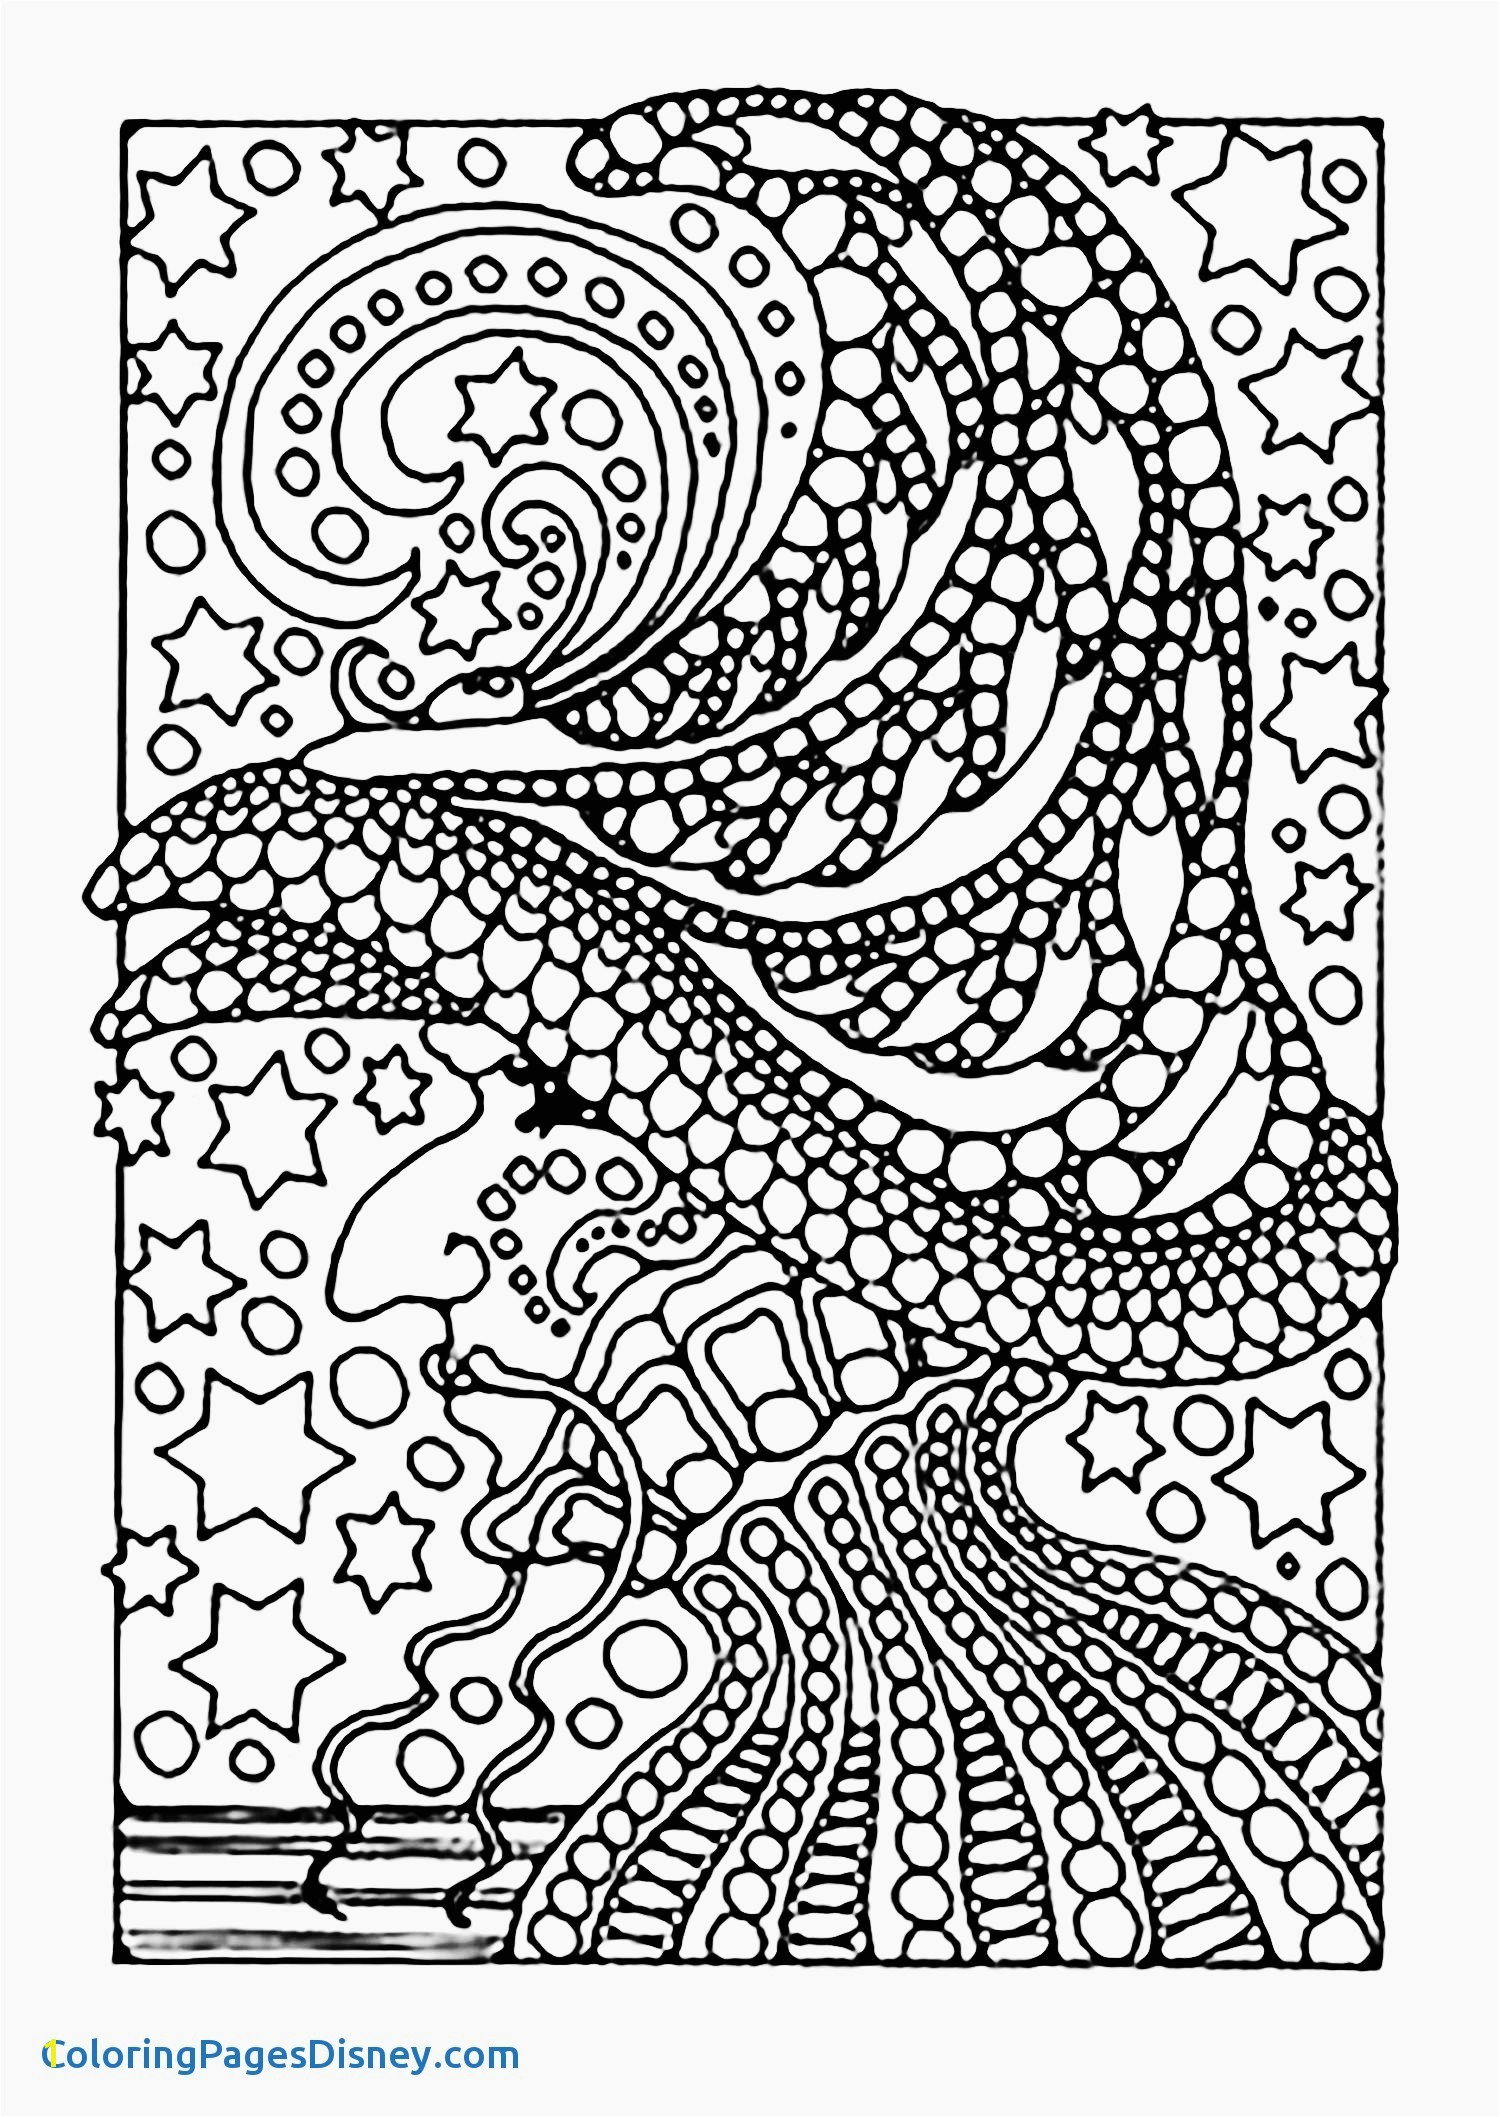 New winter coloring sheet Free 4p Winter Coloring Pages Free New Adult Colouring In Books